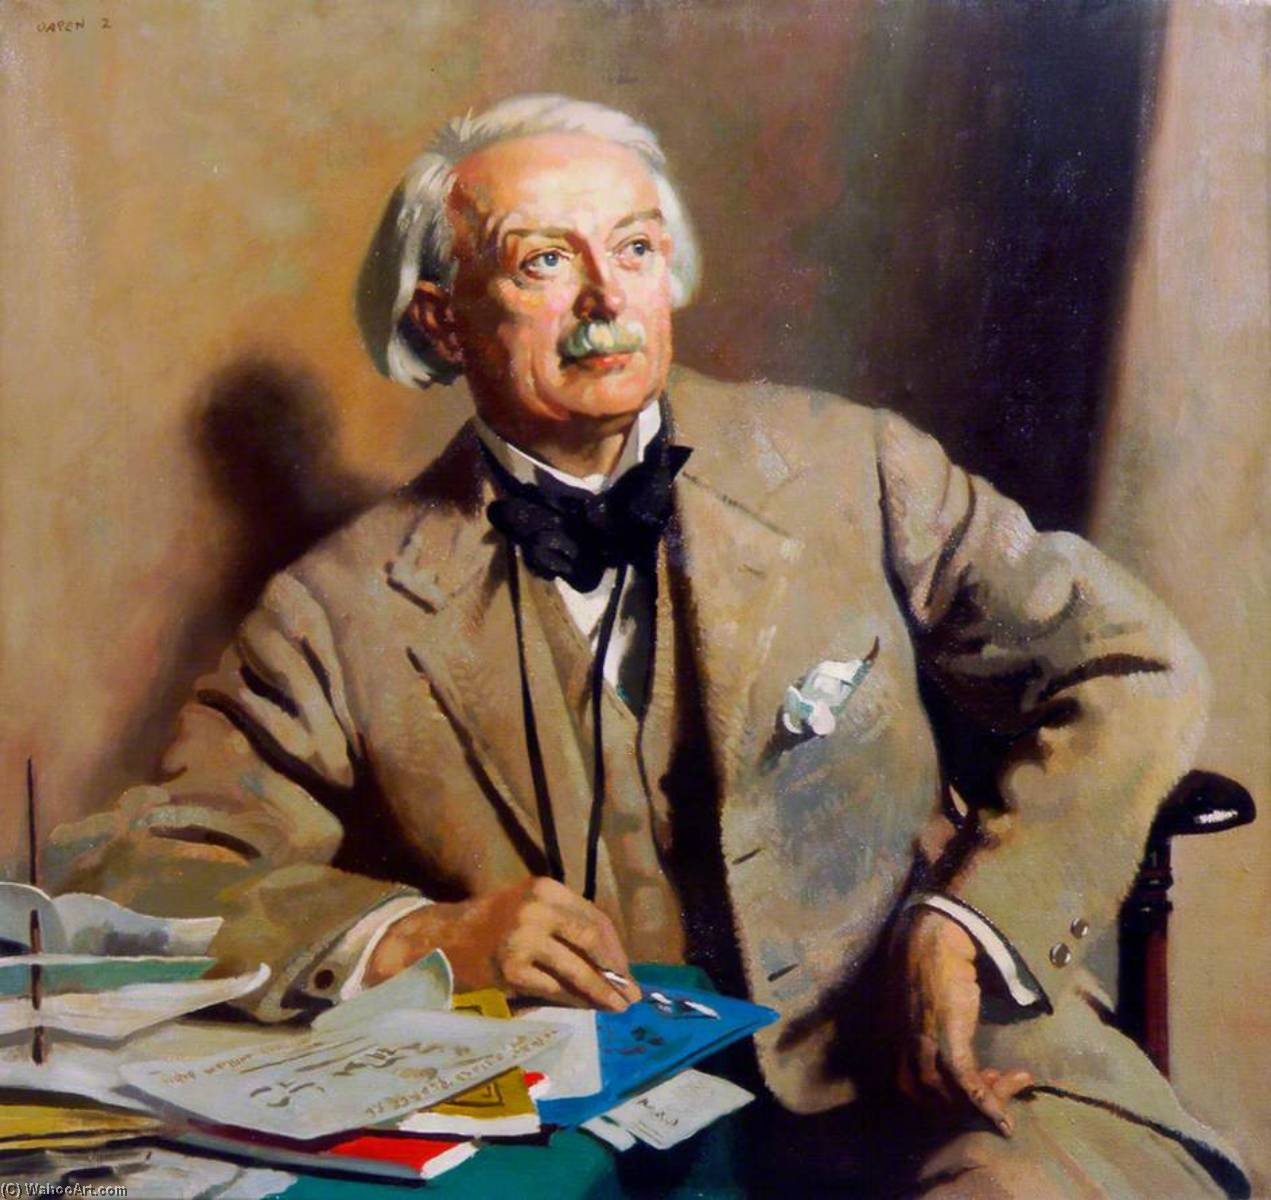 david lloyd george ( 1863–1945 ) , 1st Comte lloyd george de Dwyfor , Premier Ministre, huile sur toile de William Newenham Montague Orpen (1878-1931, Ireland)